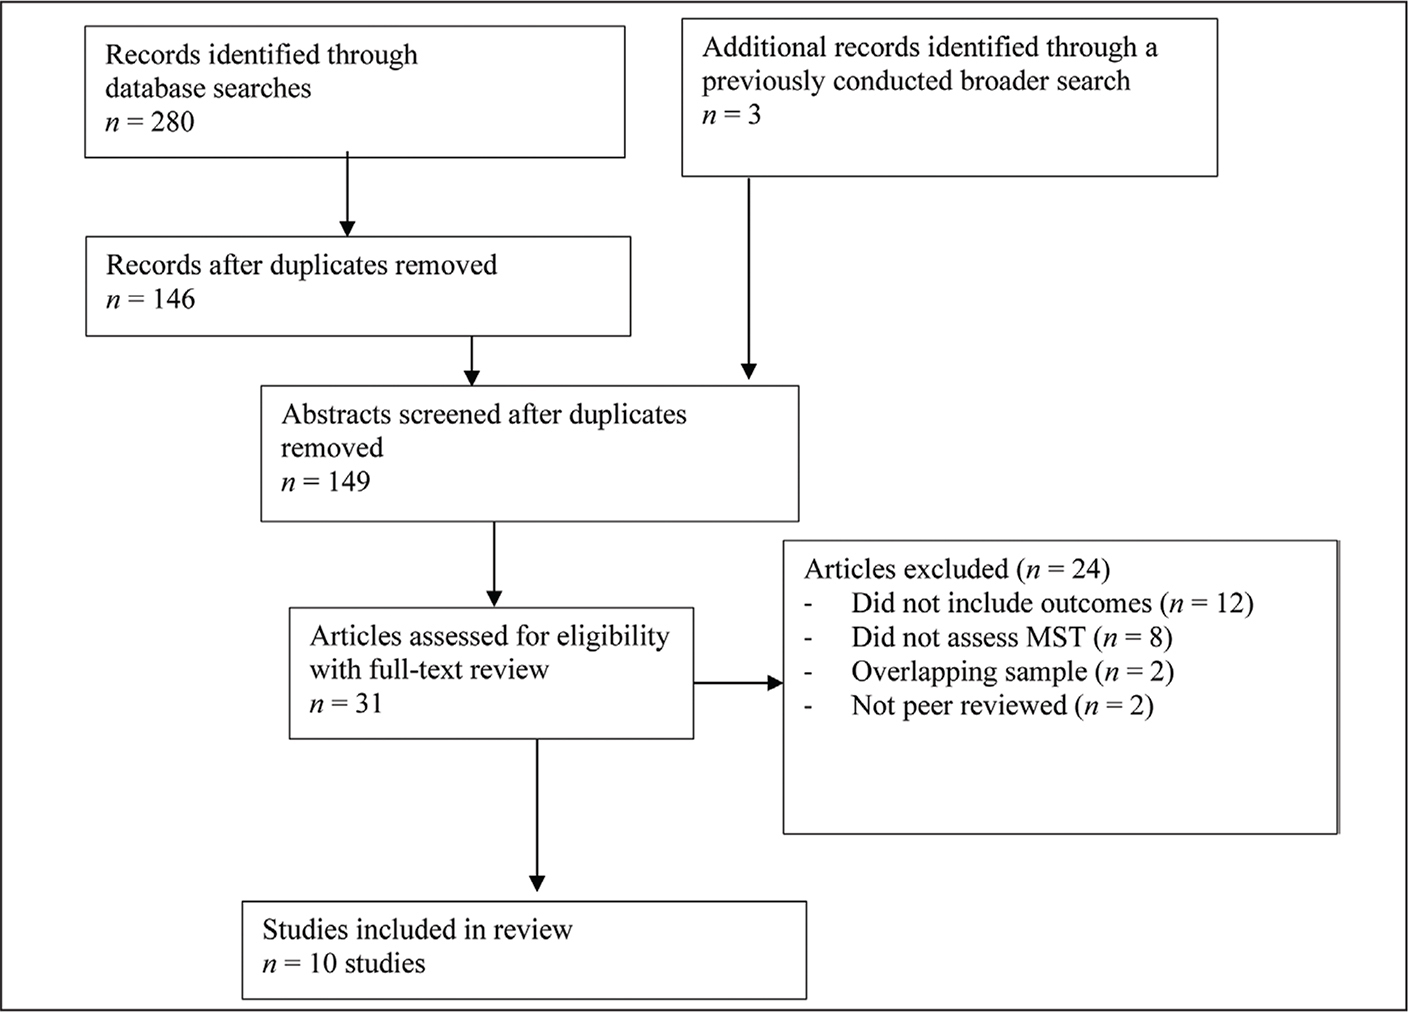 PRISMA (Preferred Reporting Items for Systematic Reviews and Meta-Analyses) flow chart used to evaluate articles that were selected for full-text review.